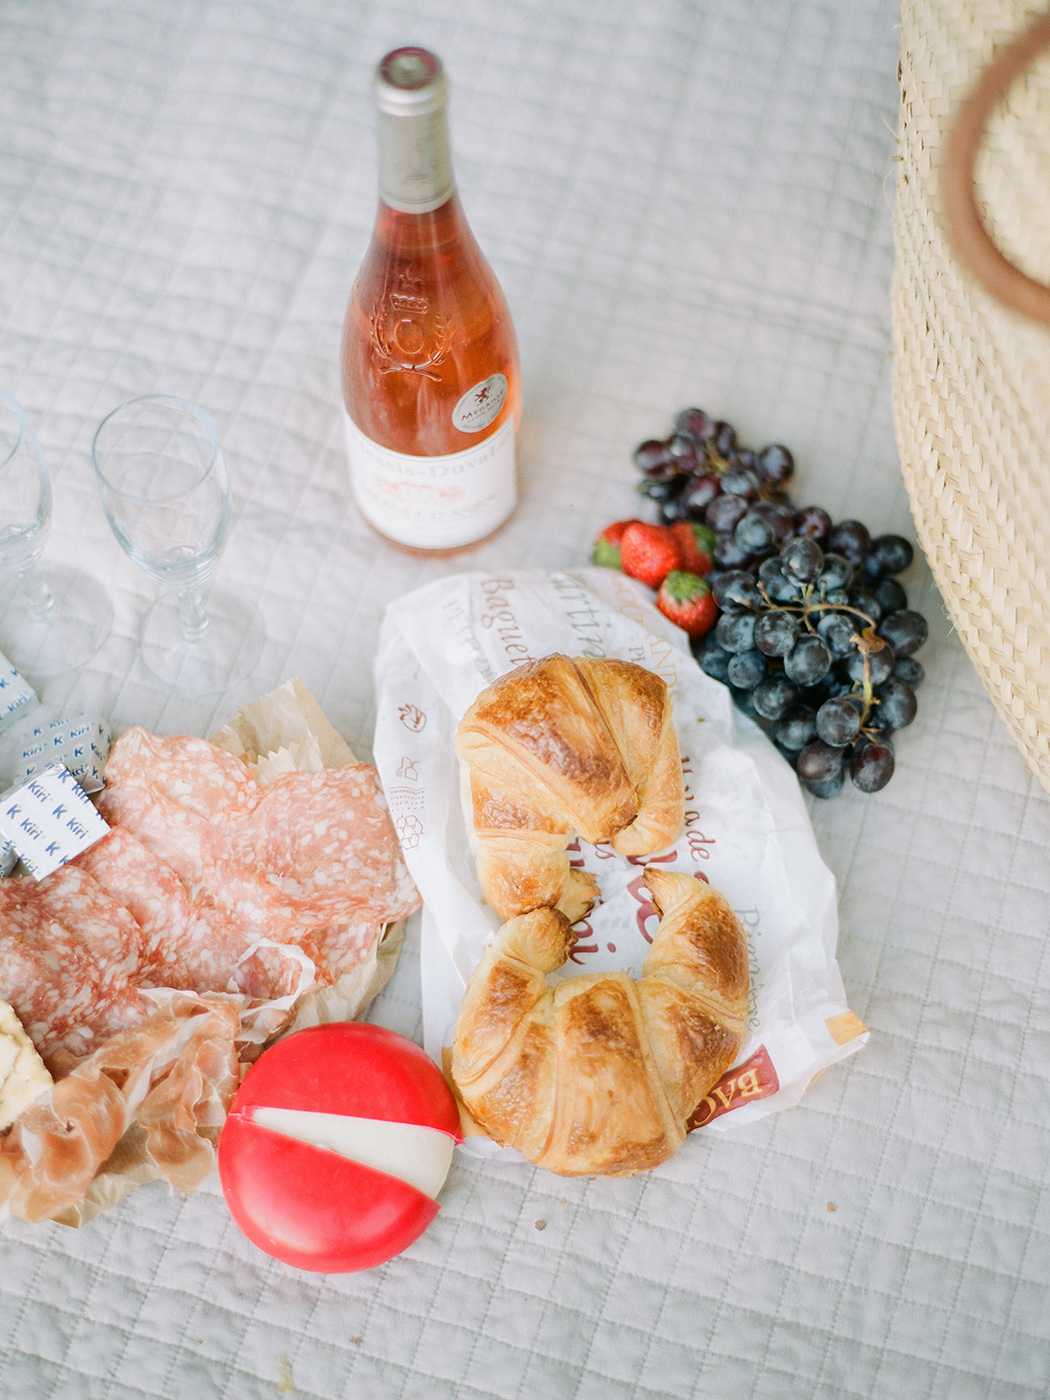 Picnic in Paris | Rensche Mari